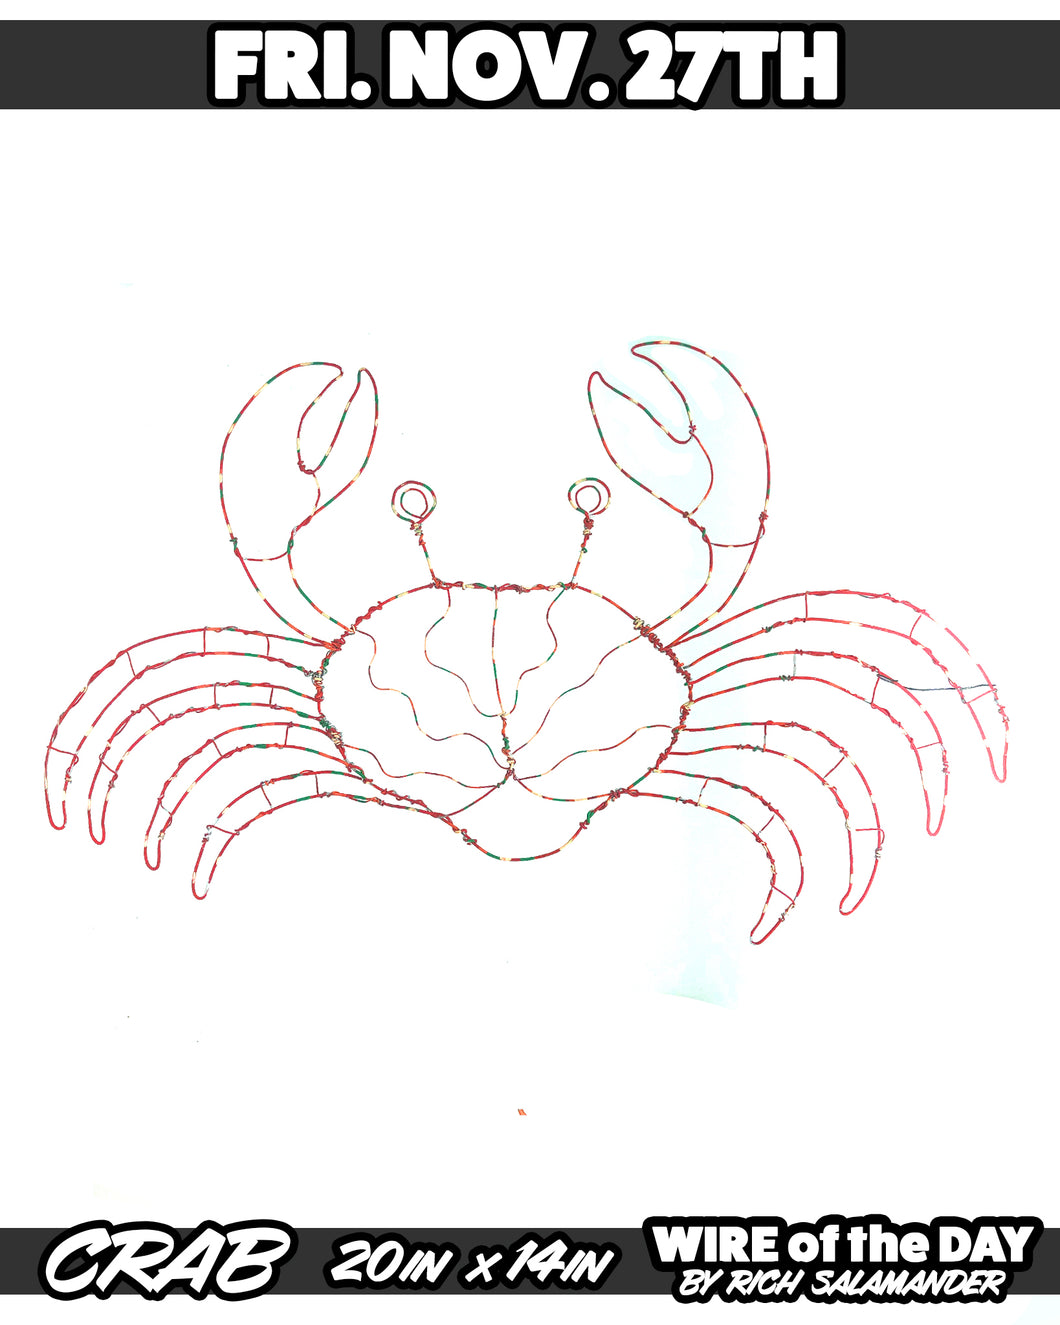 WIRE of the DAY CRAB